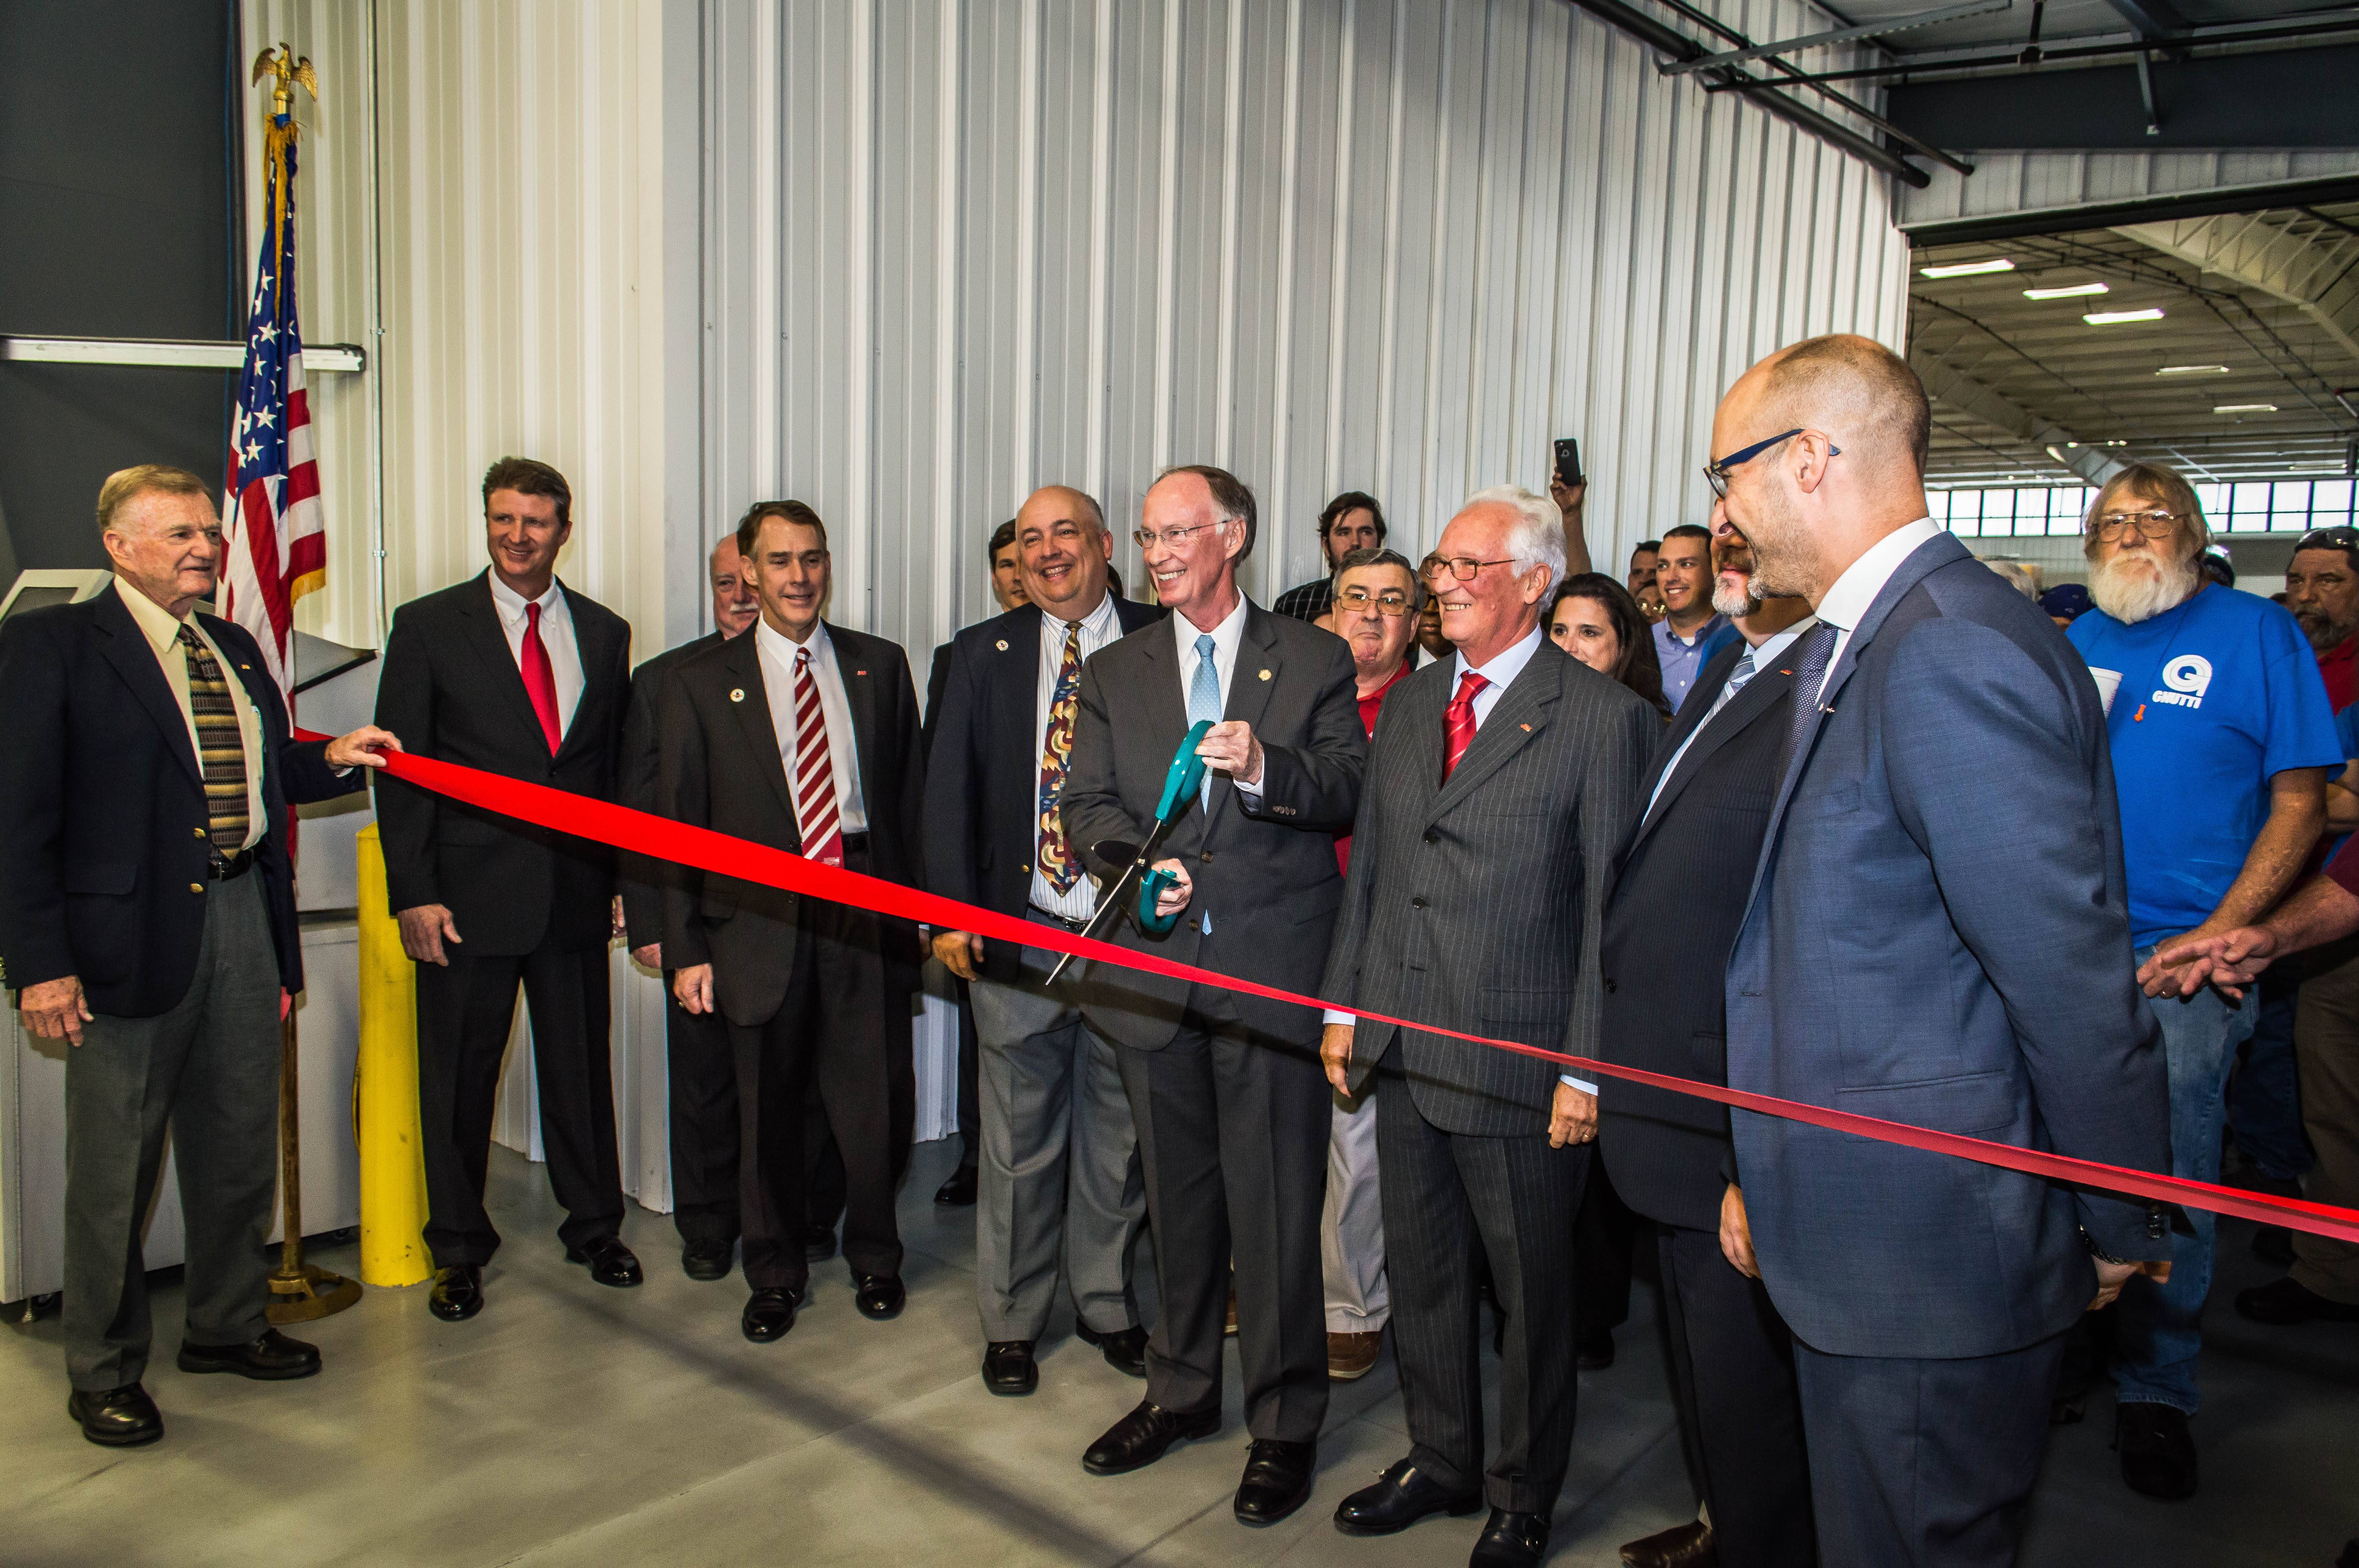 Alabama calhoun county eastaboga - Paolo Groff Ceo Of Gnutti Carlo Stated At The Ribbon Cutting We Have Invested Here In Alabama More Than 9 Million Between The Foundry And Machine Shop